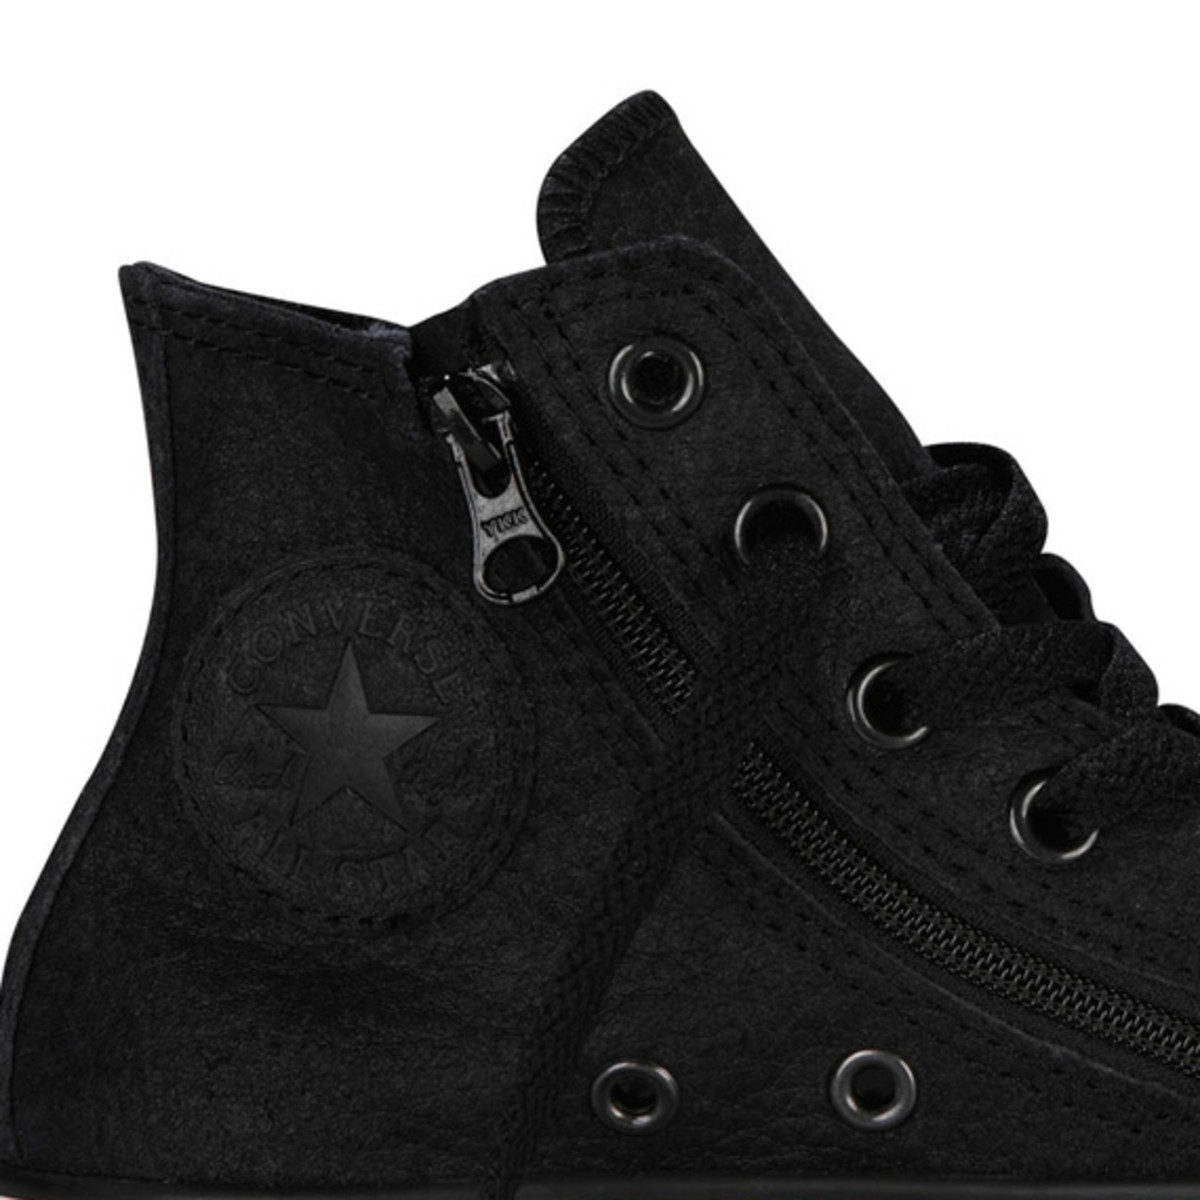 CONVERSE Chuck Taylor All Star Double Zip - Fall 2013 Collection - 12